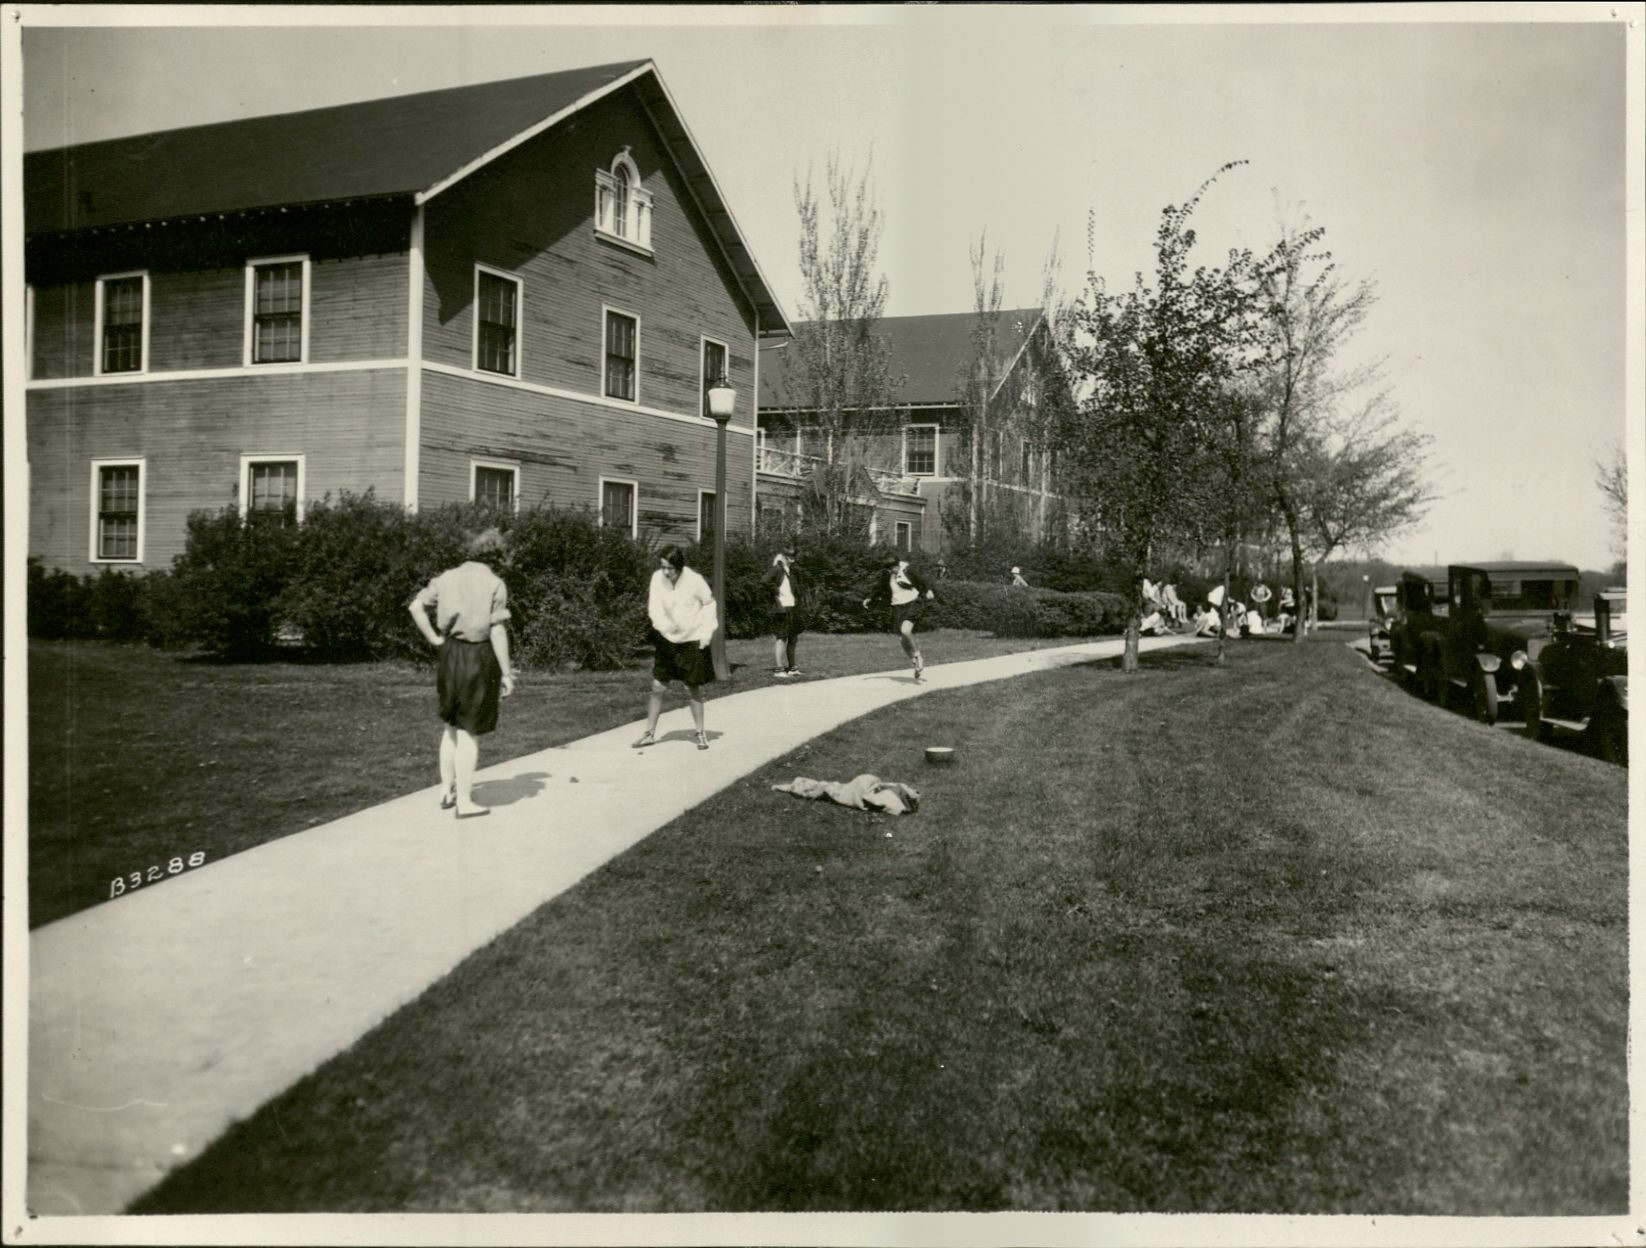 Young women playinig hopscotch in school uniforms on sidewalk in what looks like a neighborhood. Some students in distance are sitting down and cars are parked on the curb. Black-and-white photo. No date.